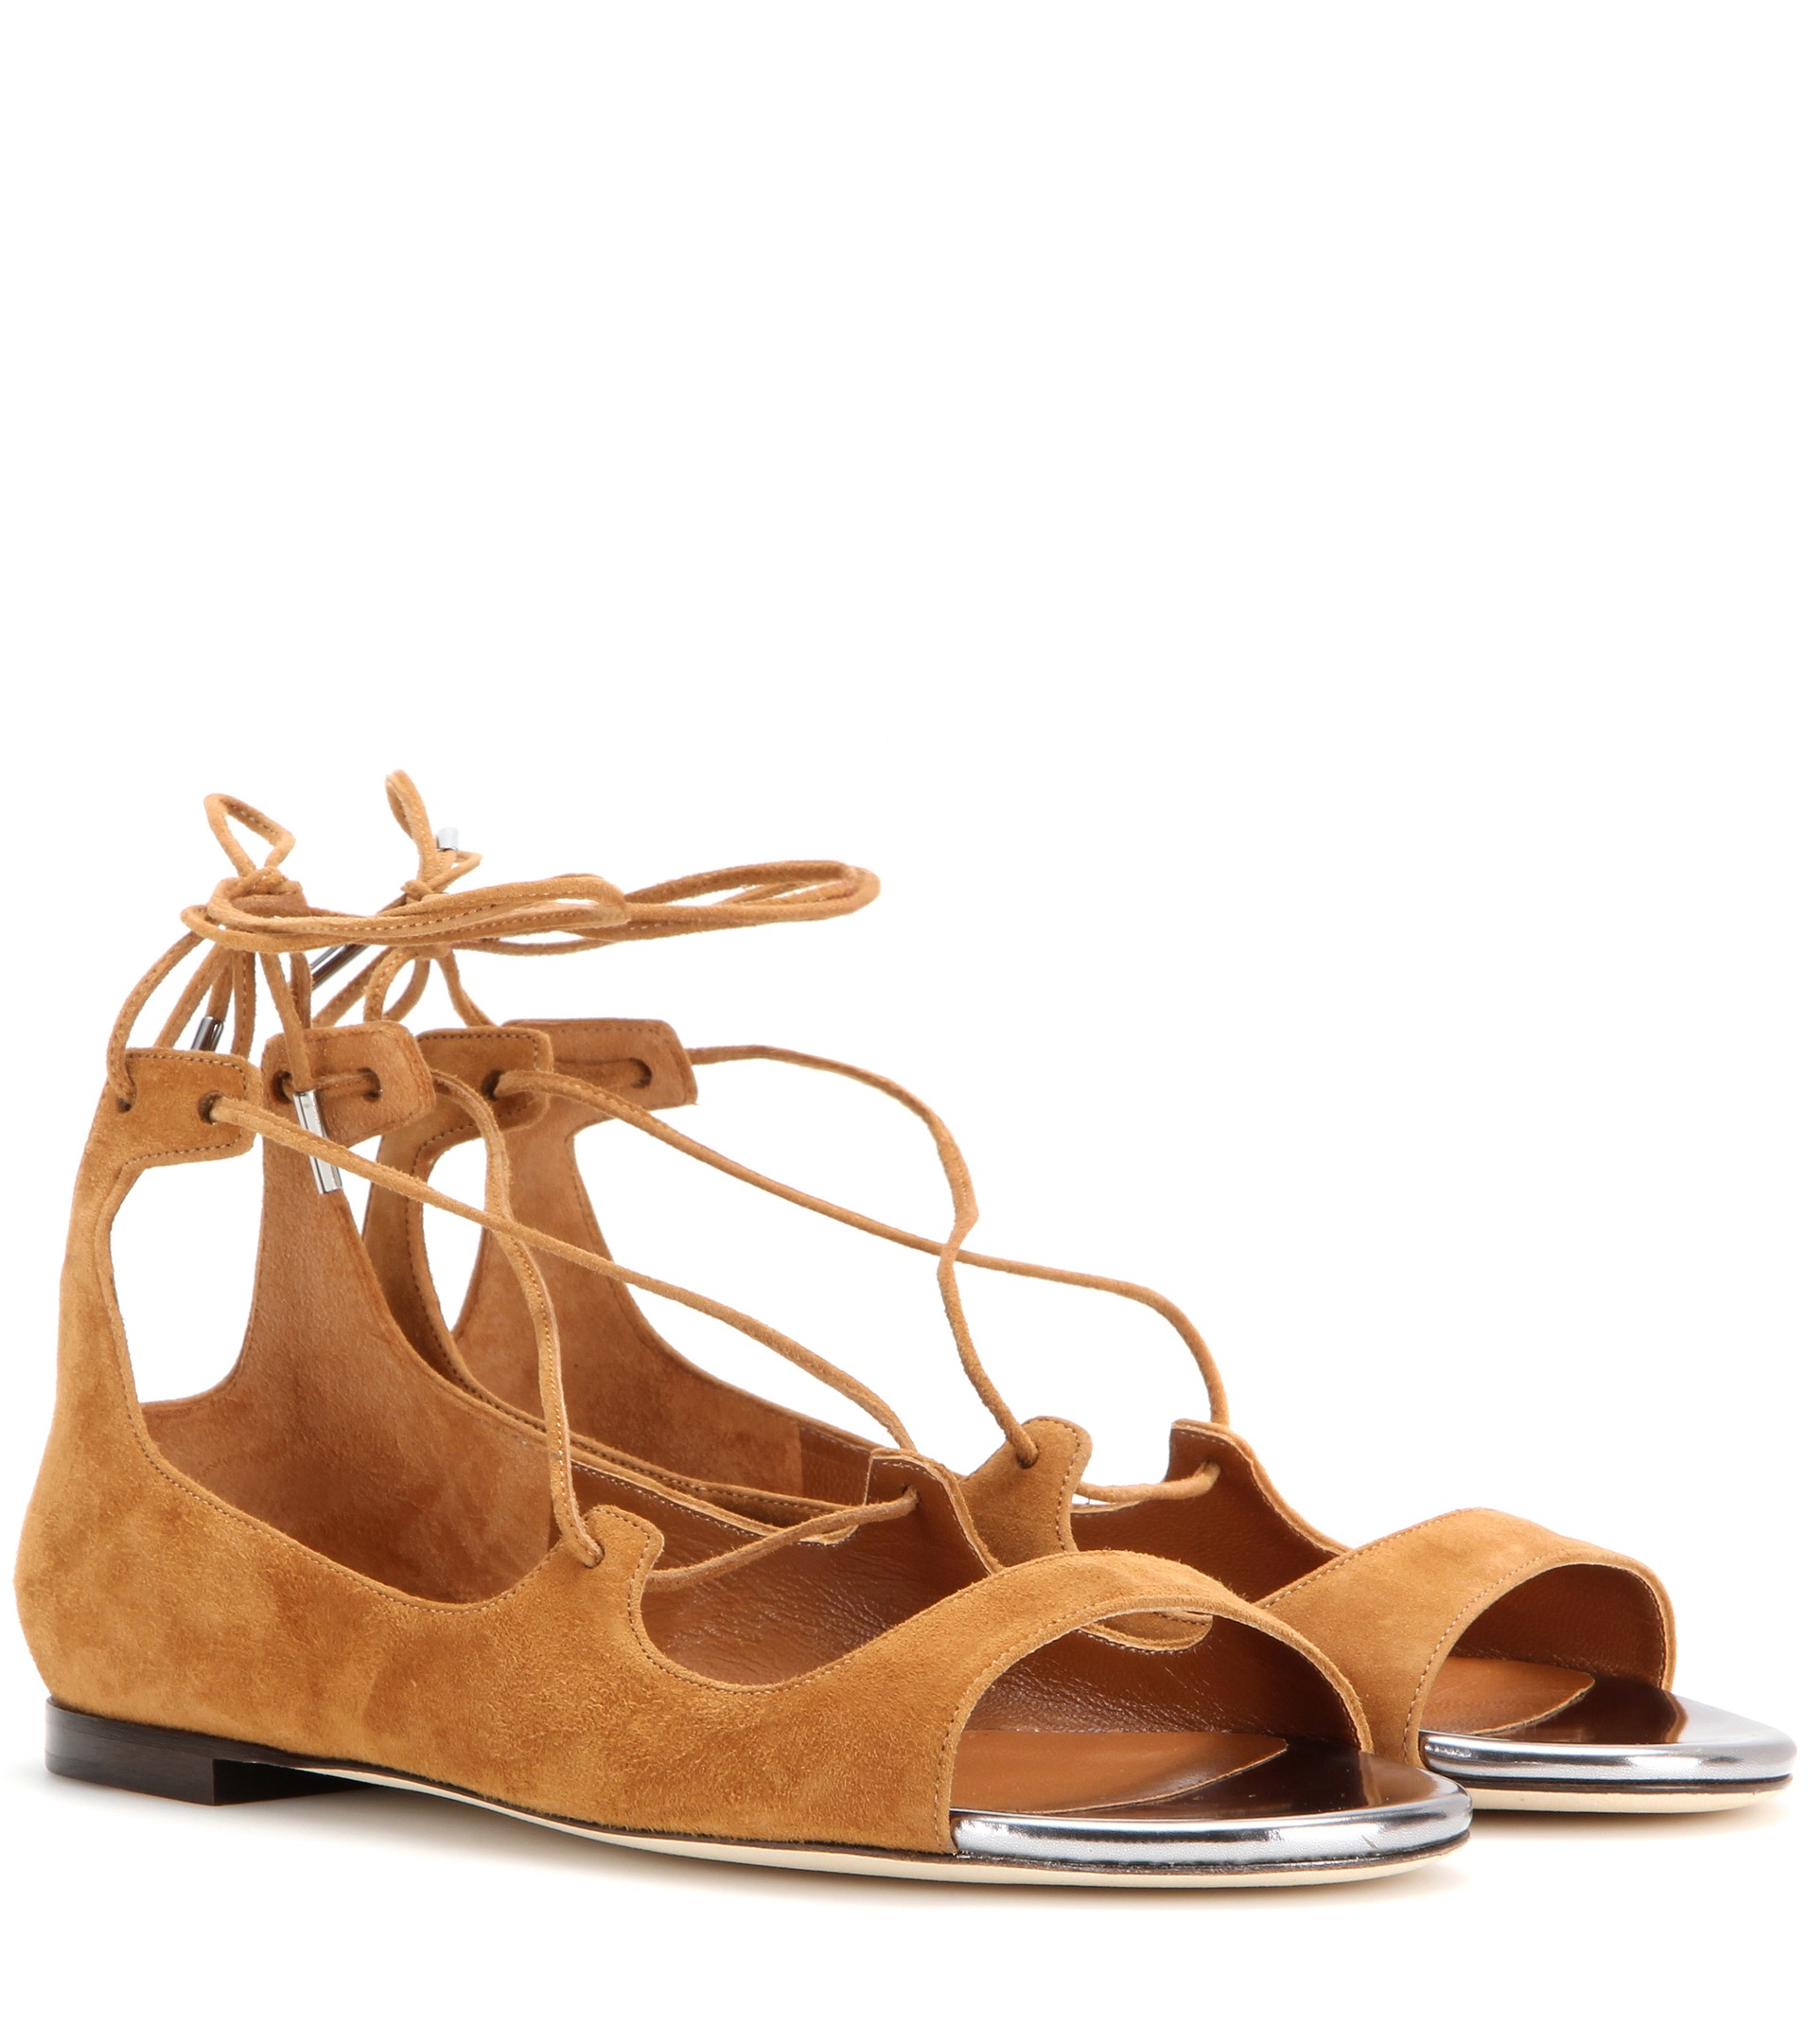 Jimmy Choo Suede Vernie Flats discount factory outlet r3T3S8e